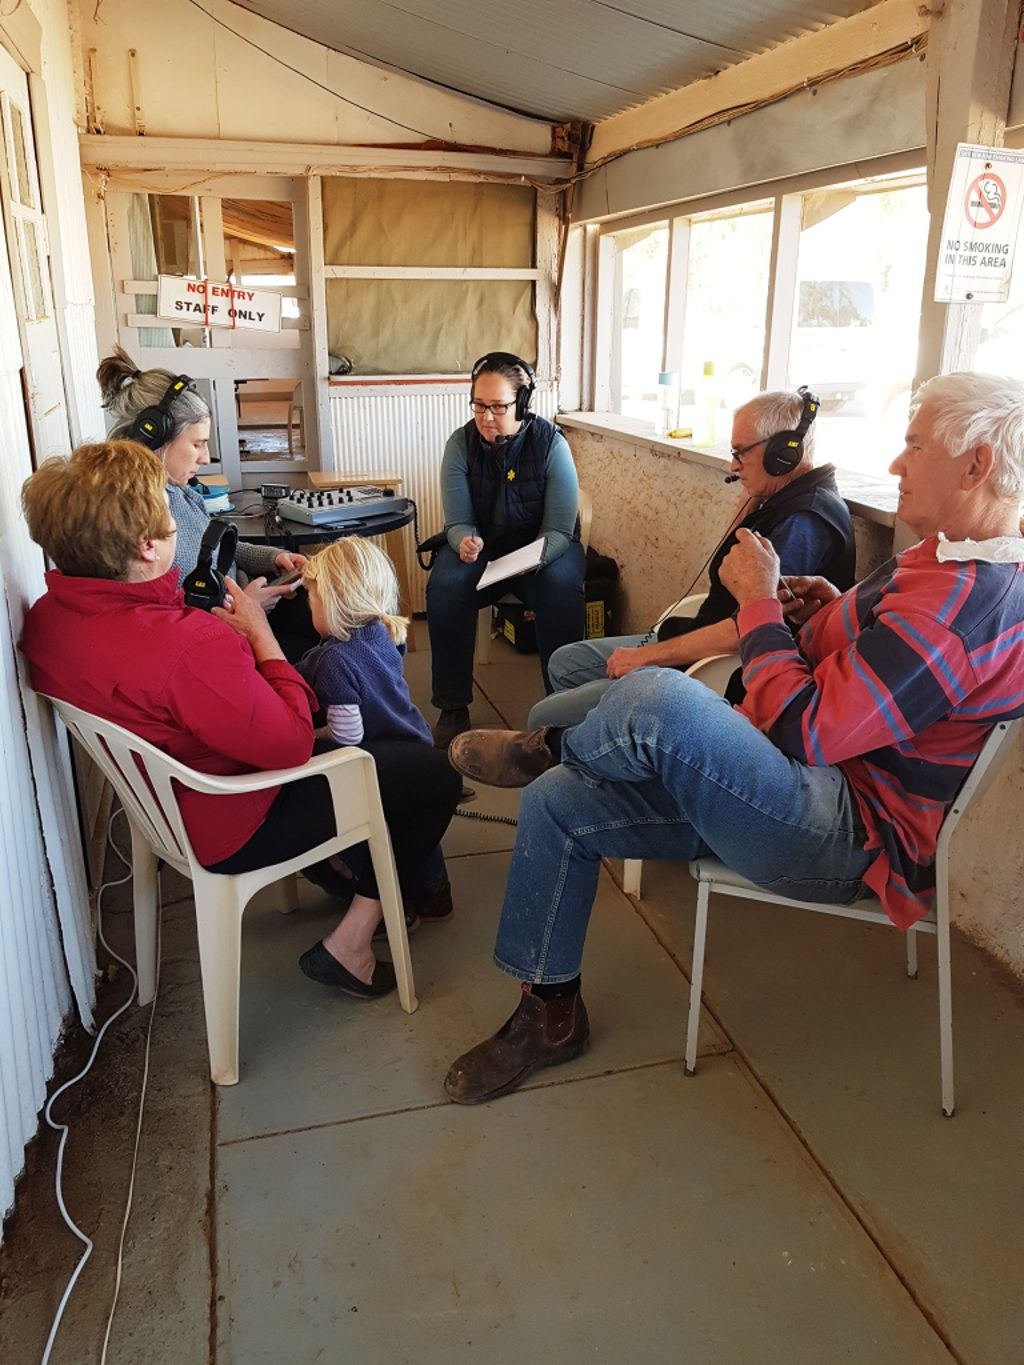 The Country Hour from tHe William Creek Hotel